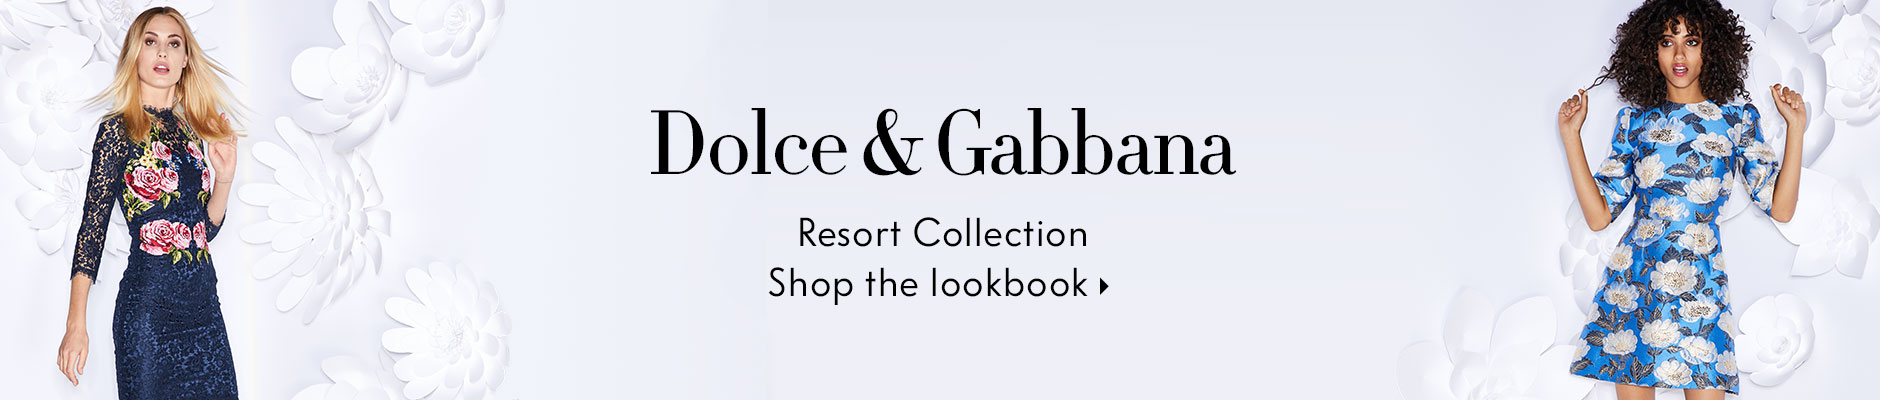 Dolce Gabbana Lookbook